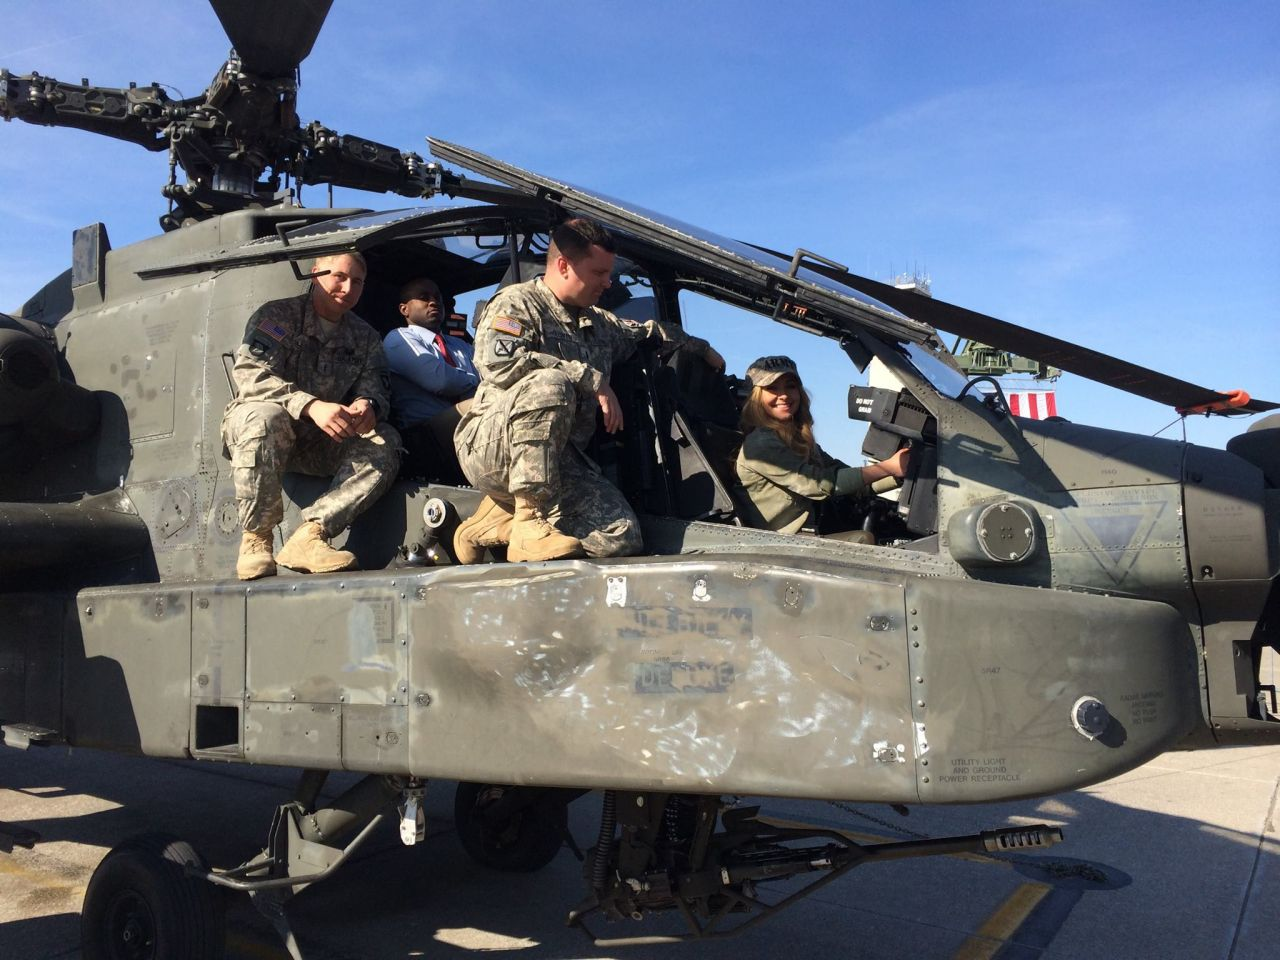 Hayden Panettiere in a Helicopter at Fort Campbell